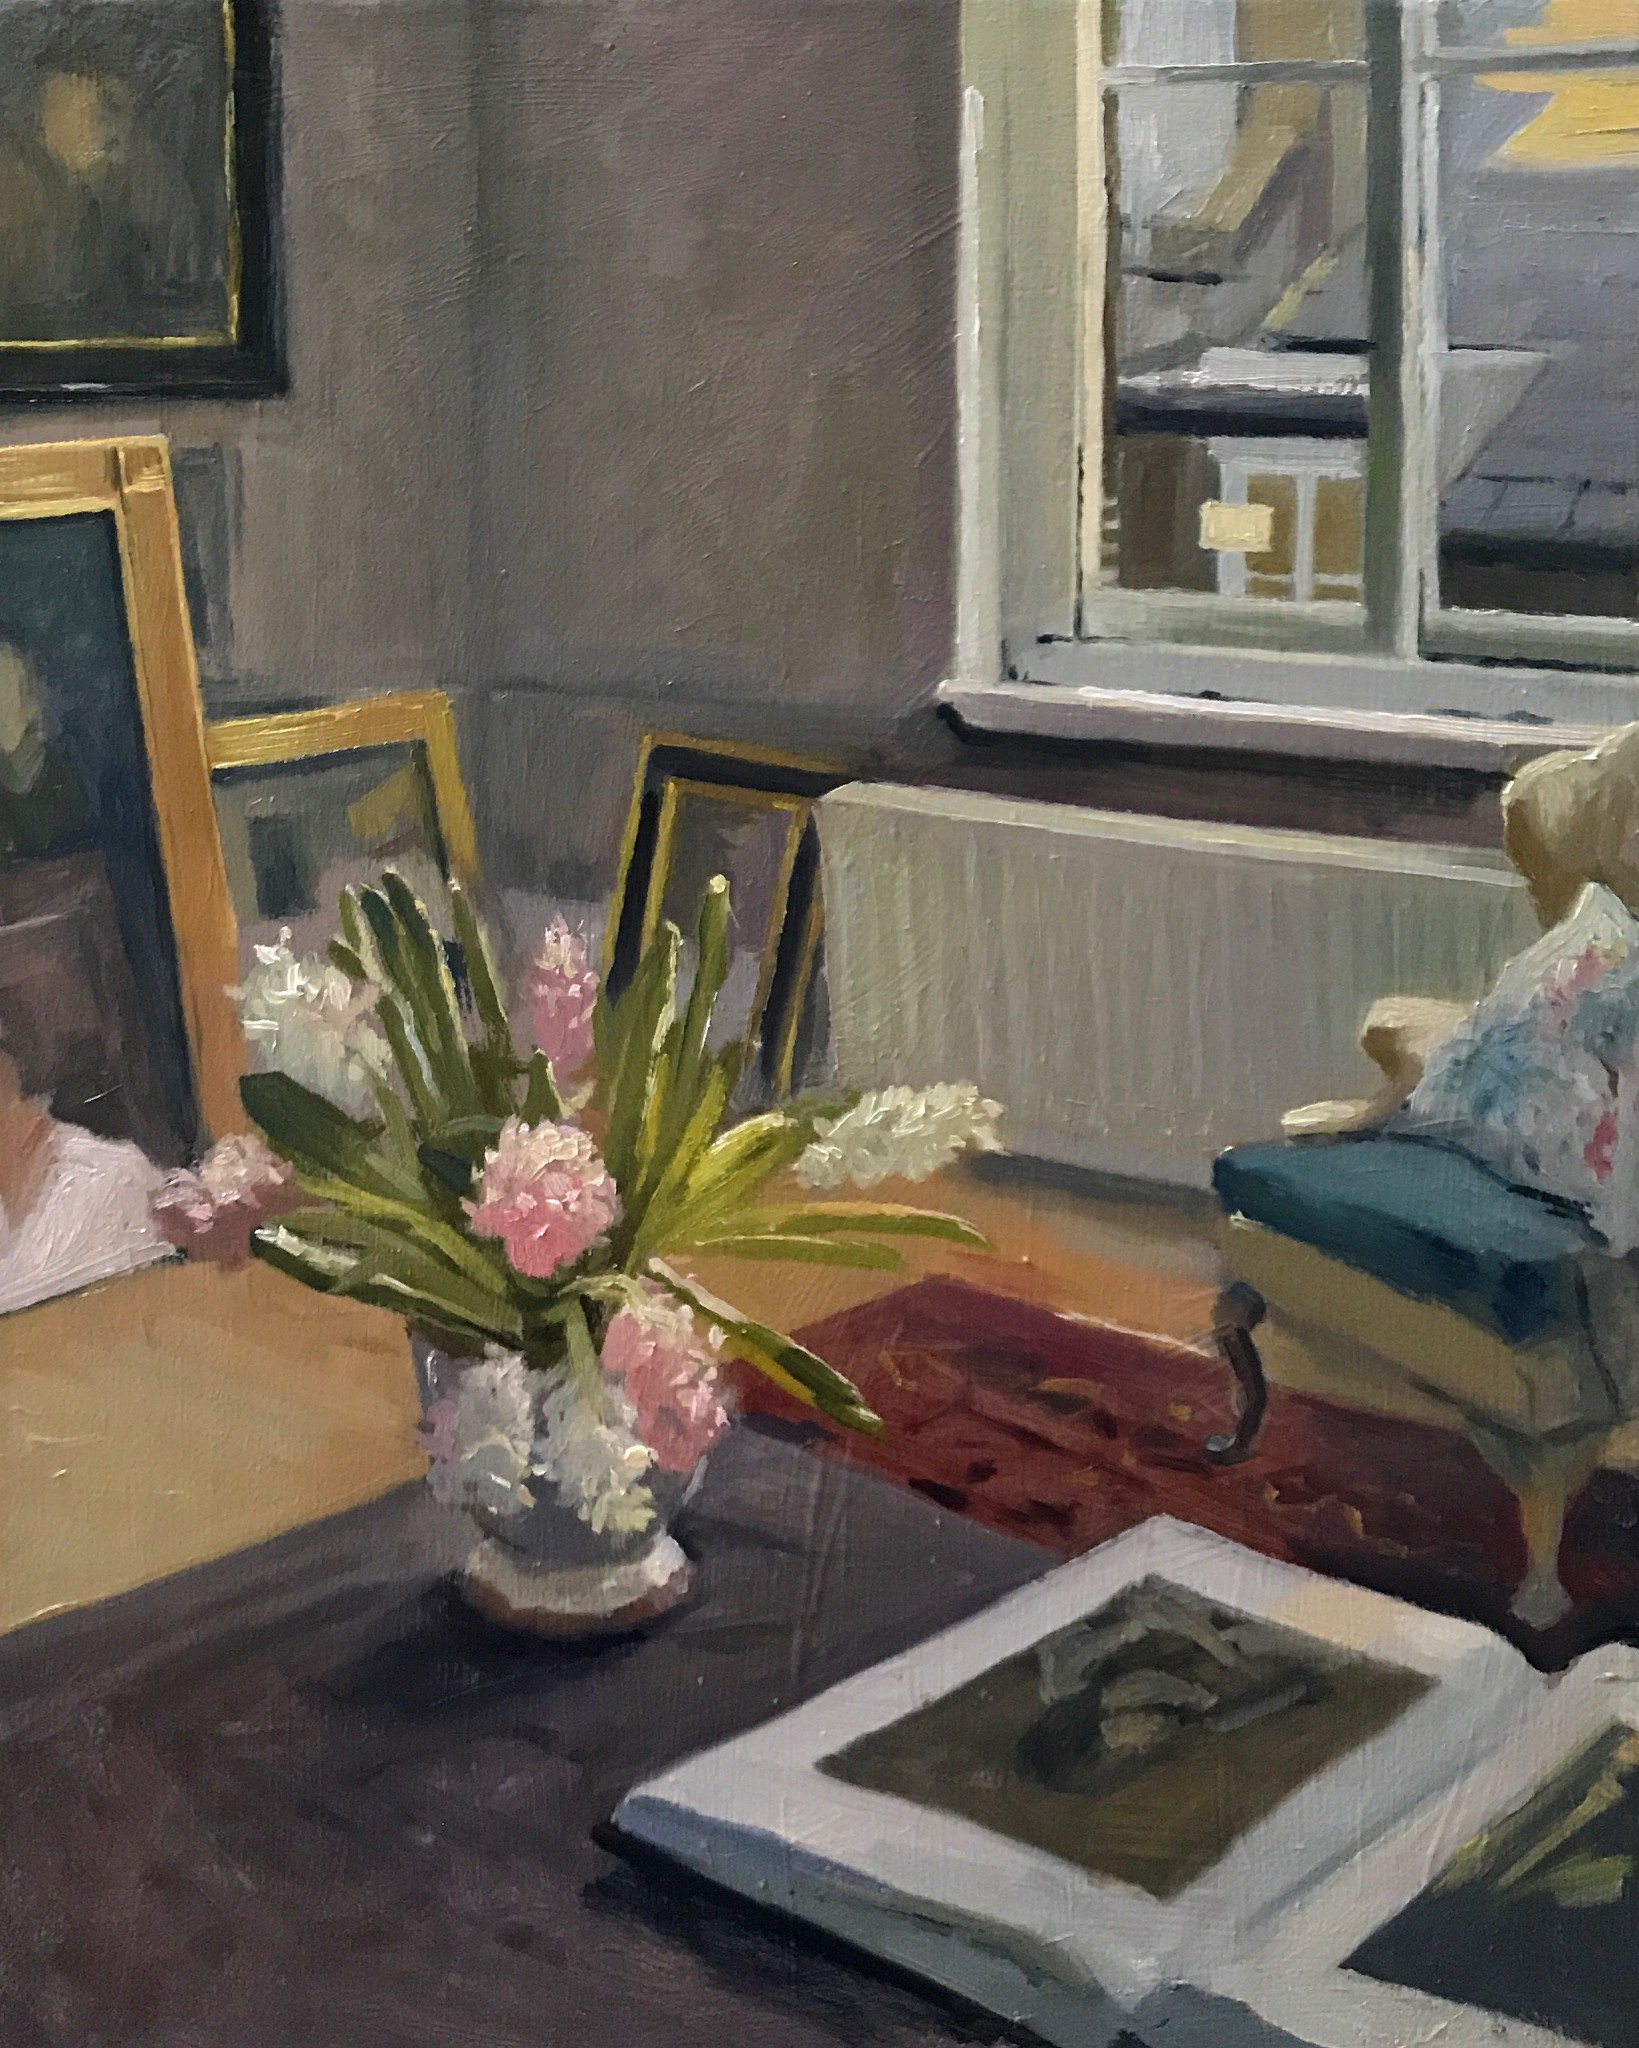 Morning Light in the Studio with Velasquez Book and Hyacinths